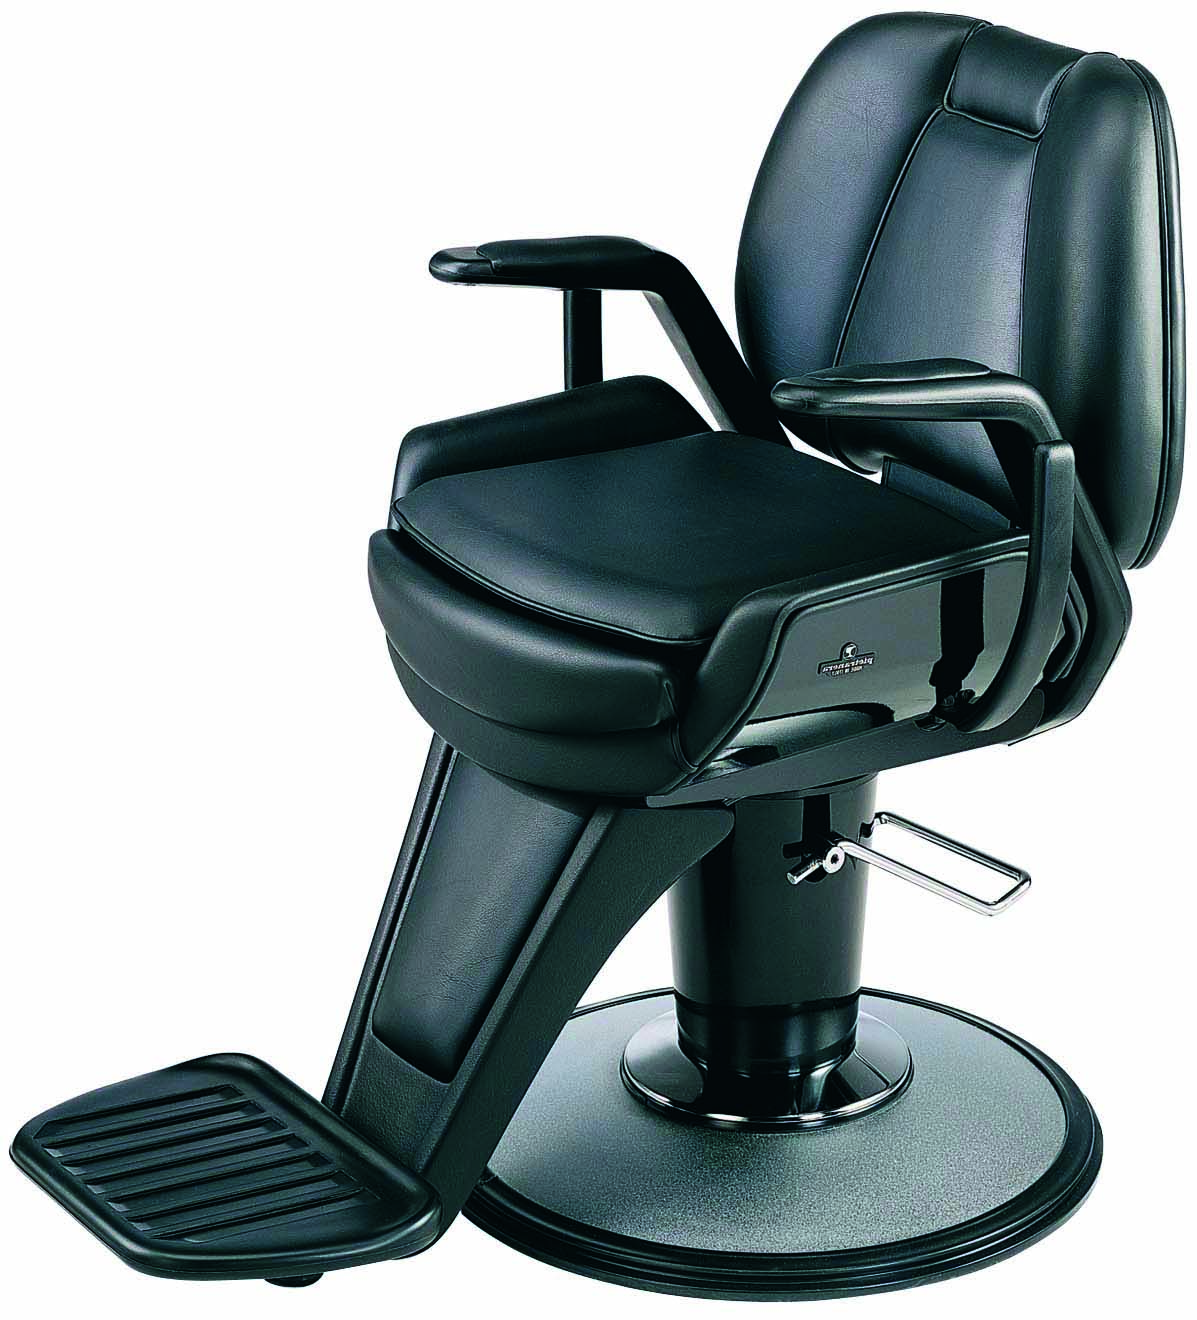 Pietranera Europa Barber Chair